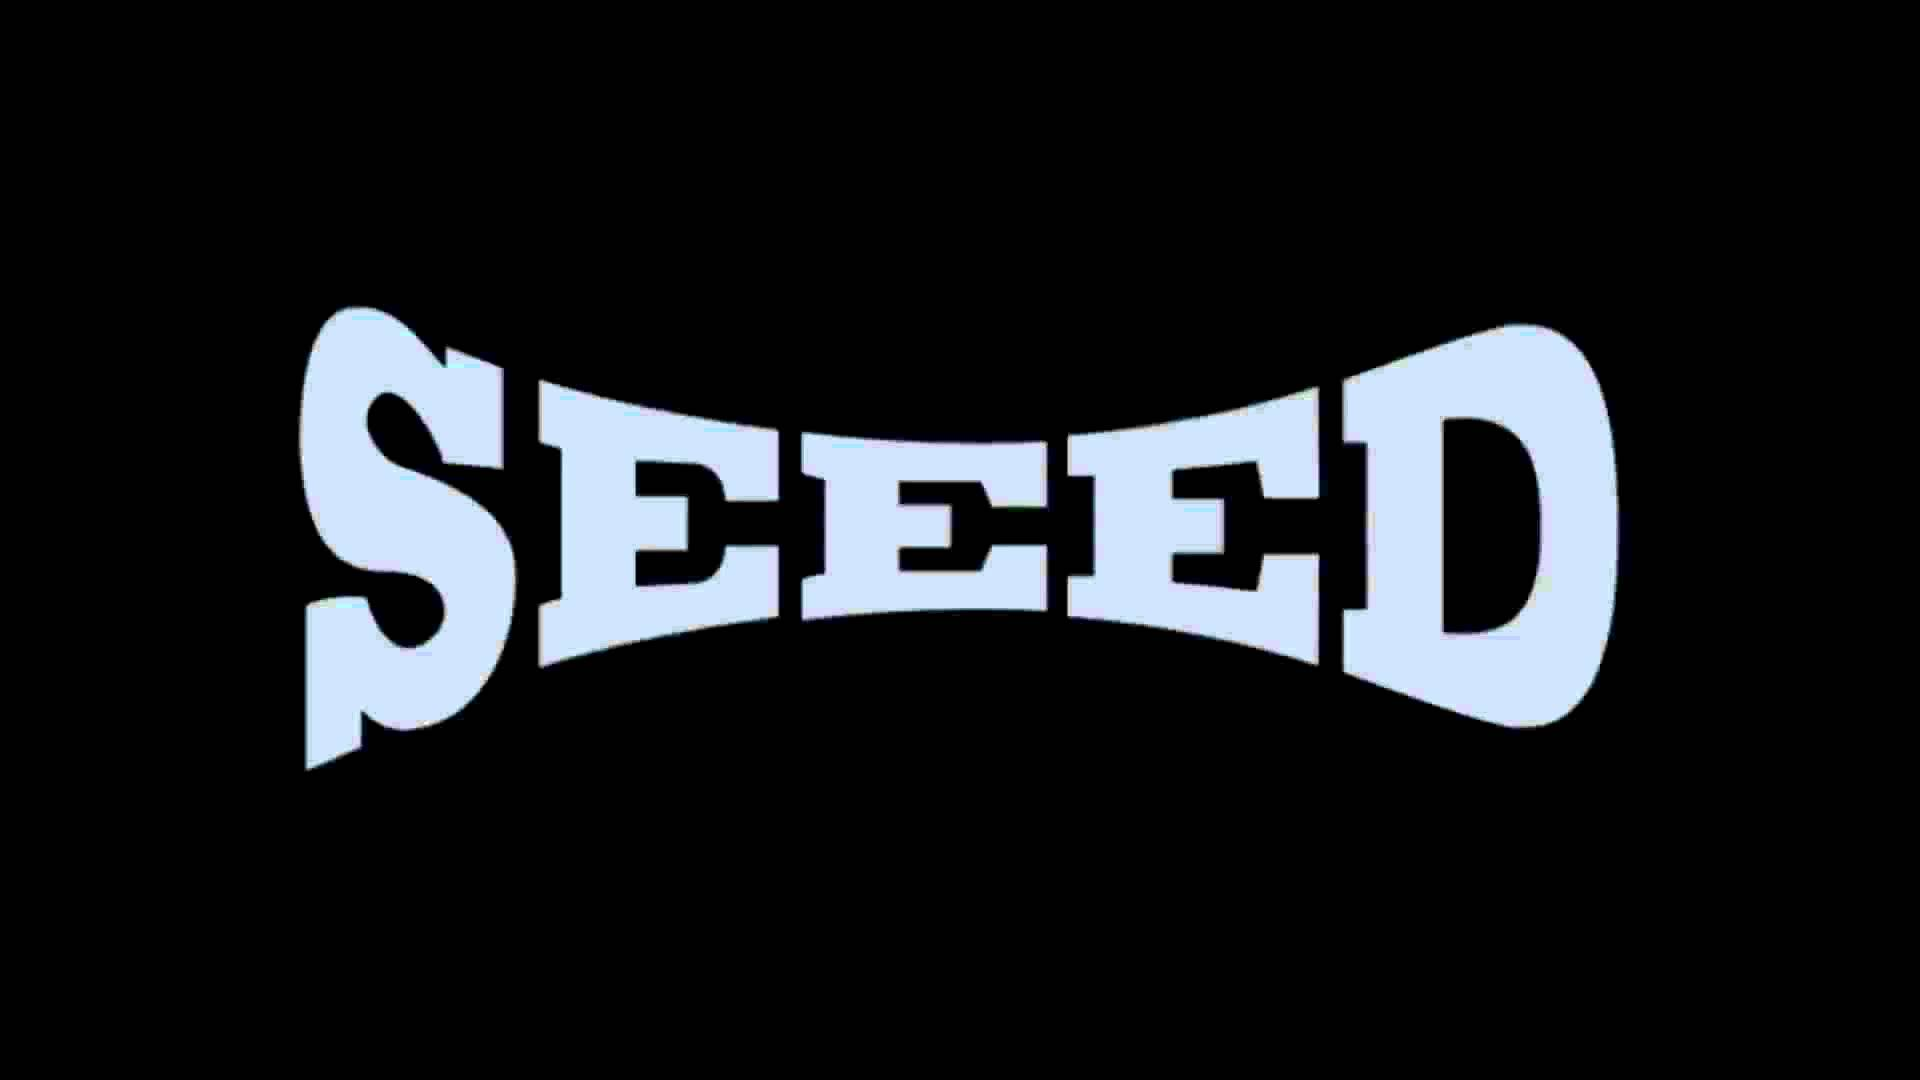 HQ Seeed Wallpapers   File 25.94Kb